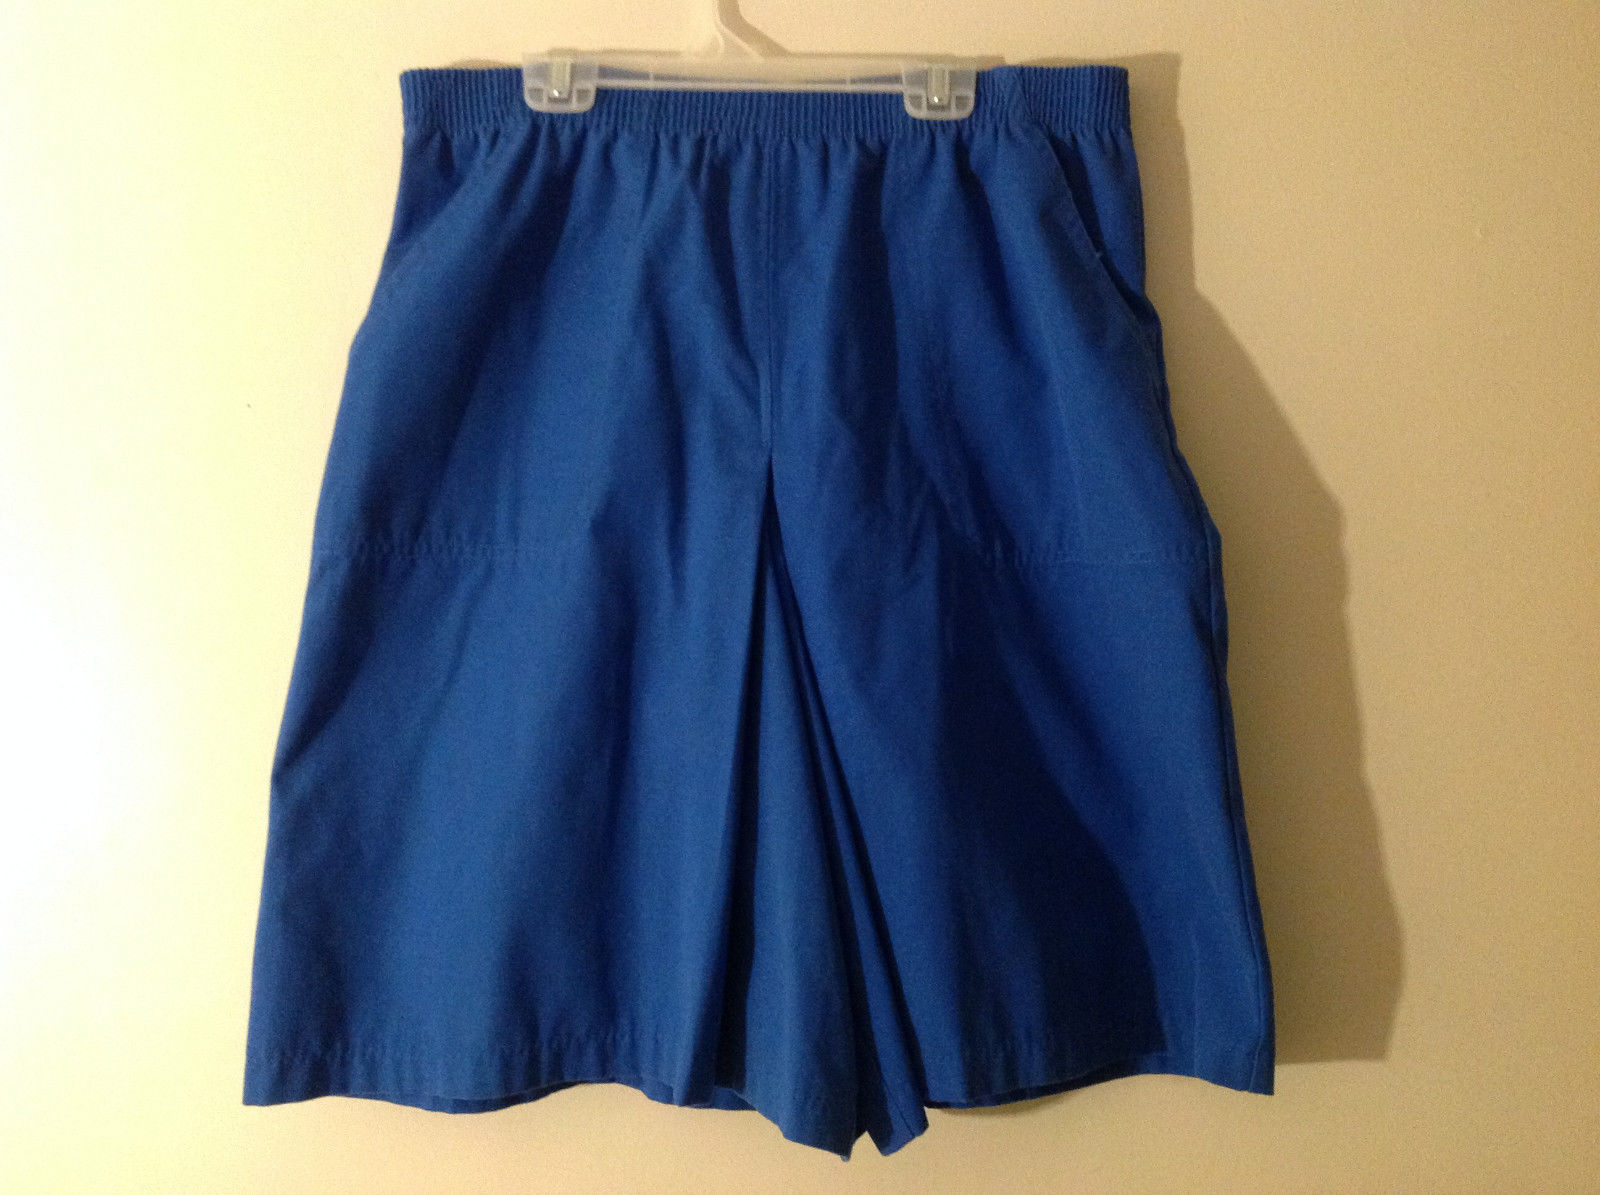 Francisca by Keret Women's Size 10 Flowy Shorts Cobalt Blue Elastic Waist Band